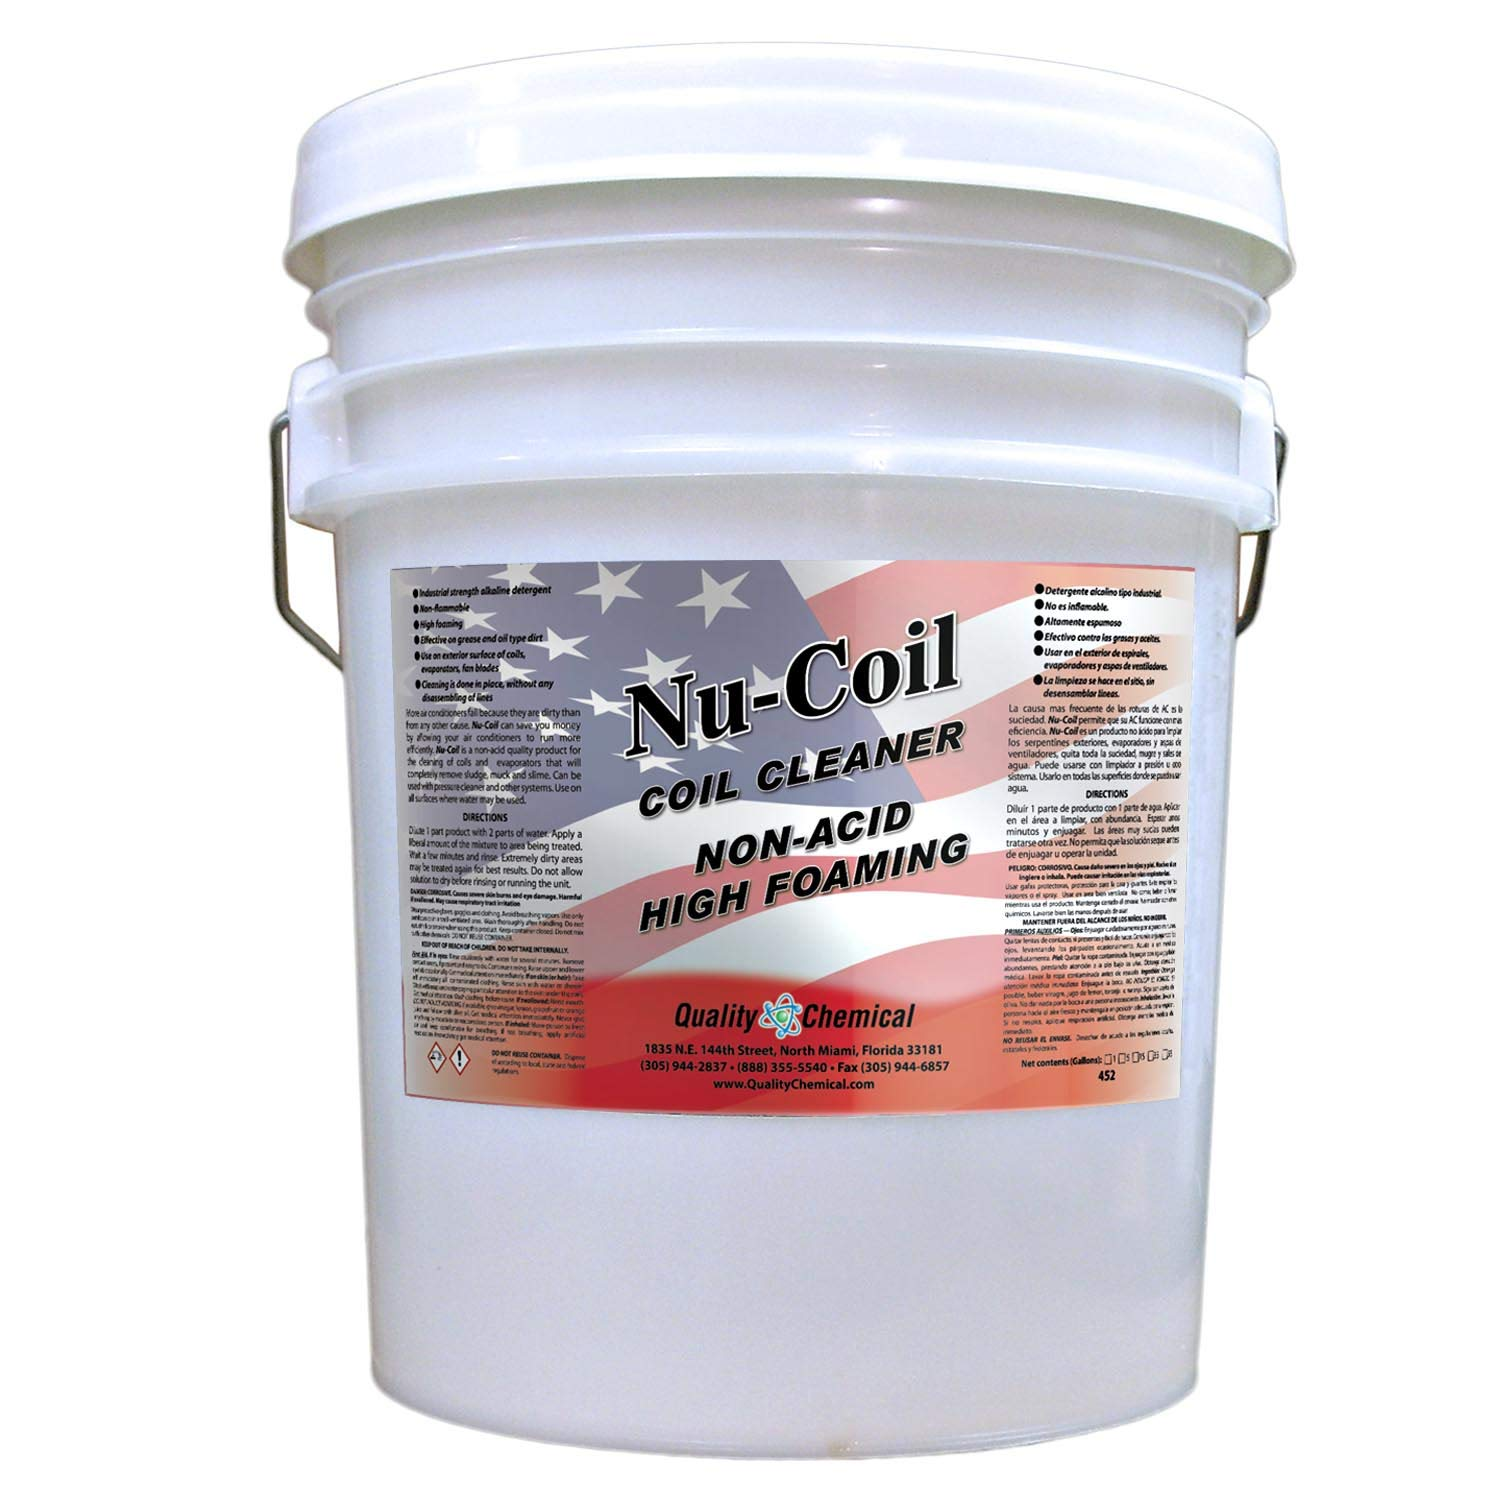 Nu-Coil Professional Grade Concentrated Air Conditioner Alkaline Condenser Coil Cleaner-5 gallon pail by Quality Chemical